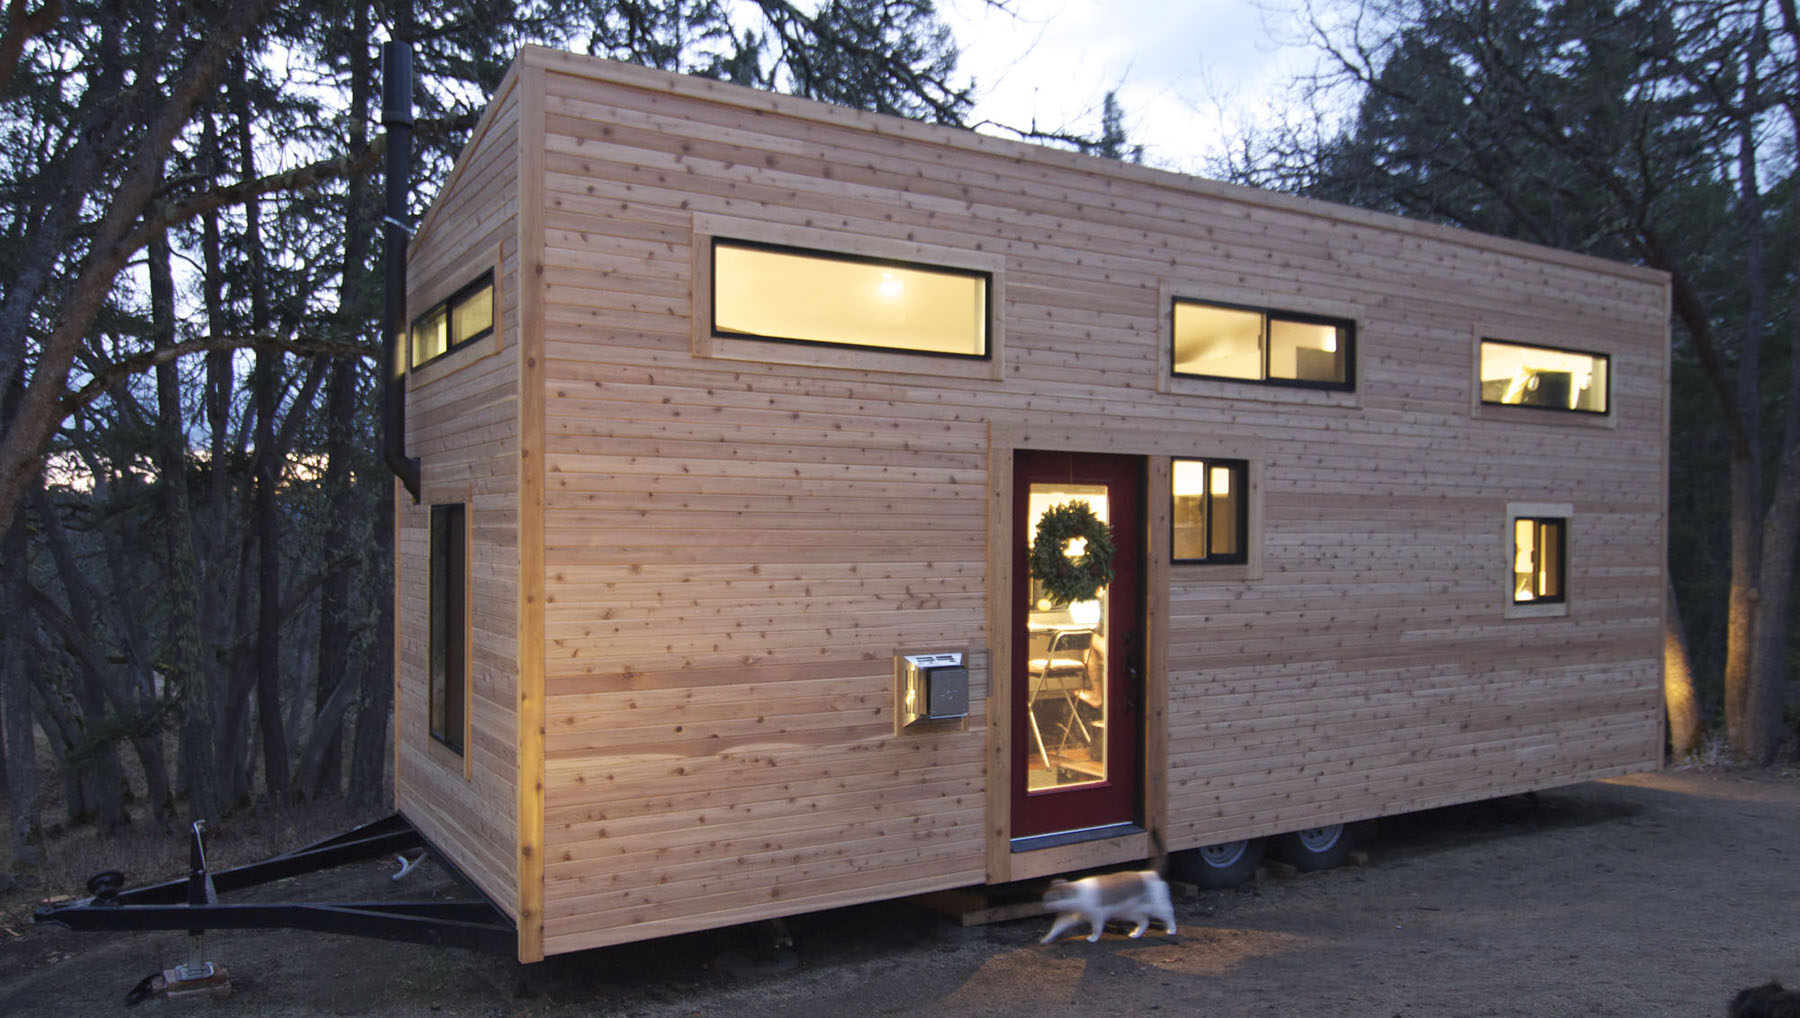 Elegant minimalist tiny house on wheels with staircase for Tiny house minimalist